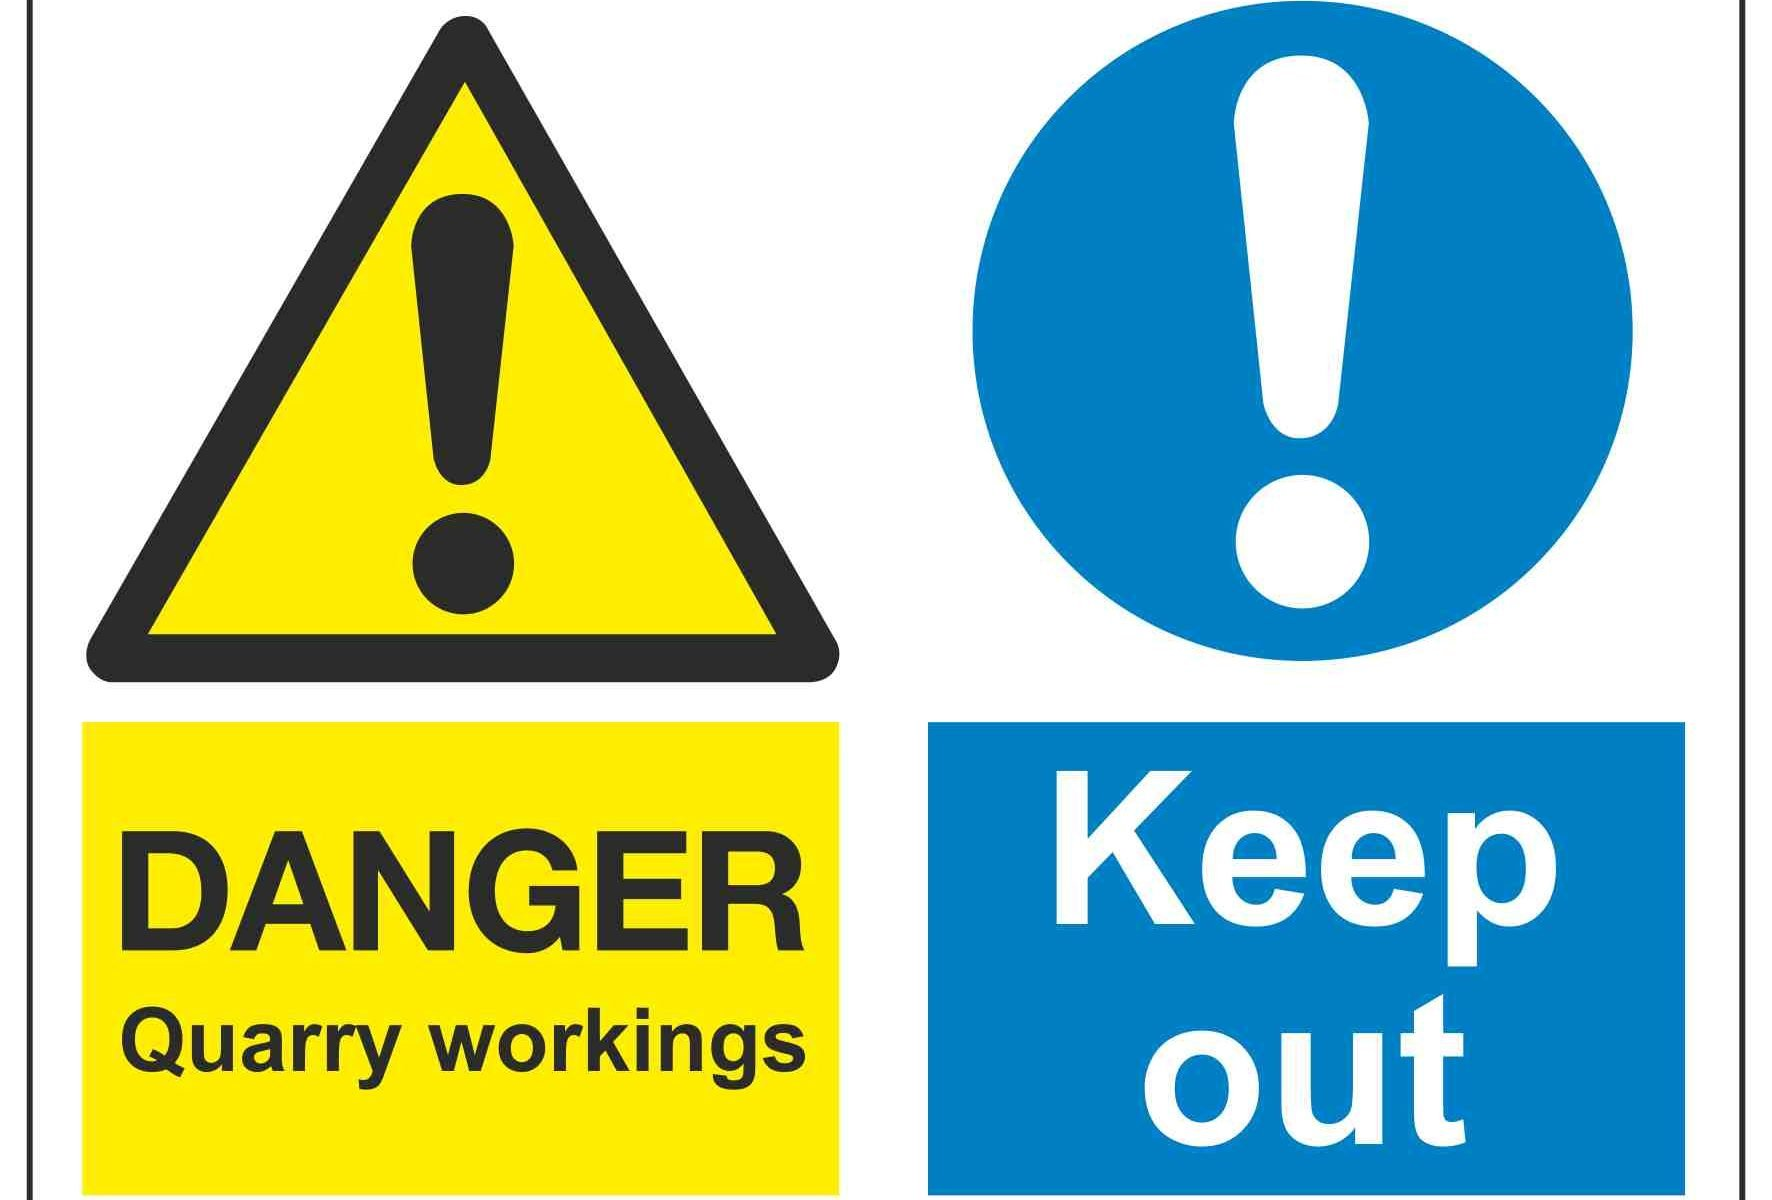 Danger Quarry workings / Keep Out